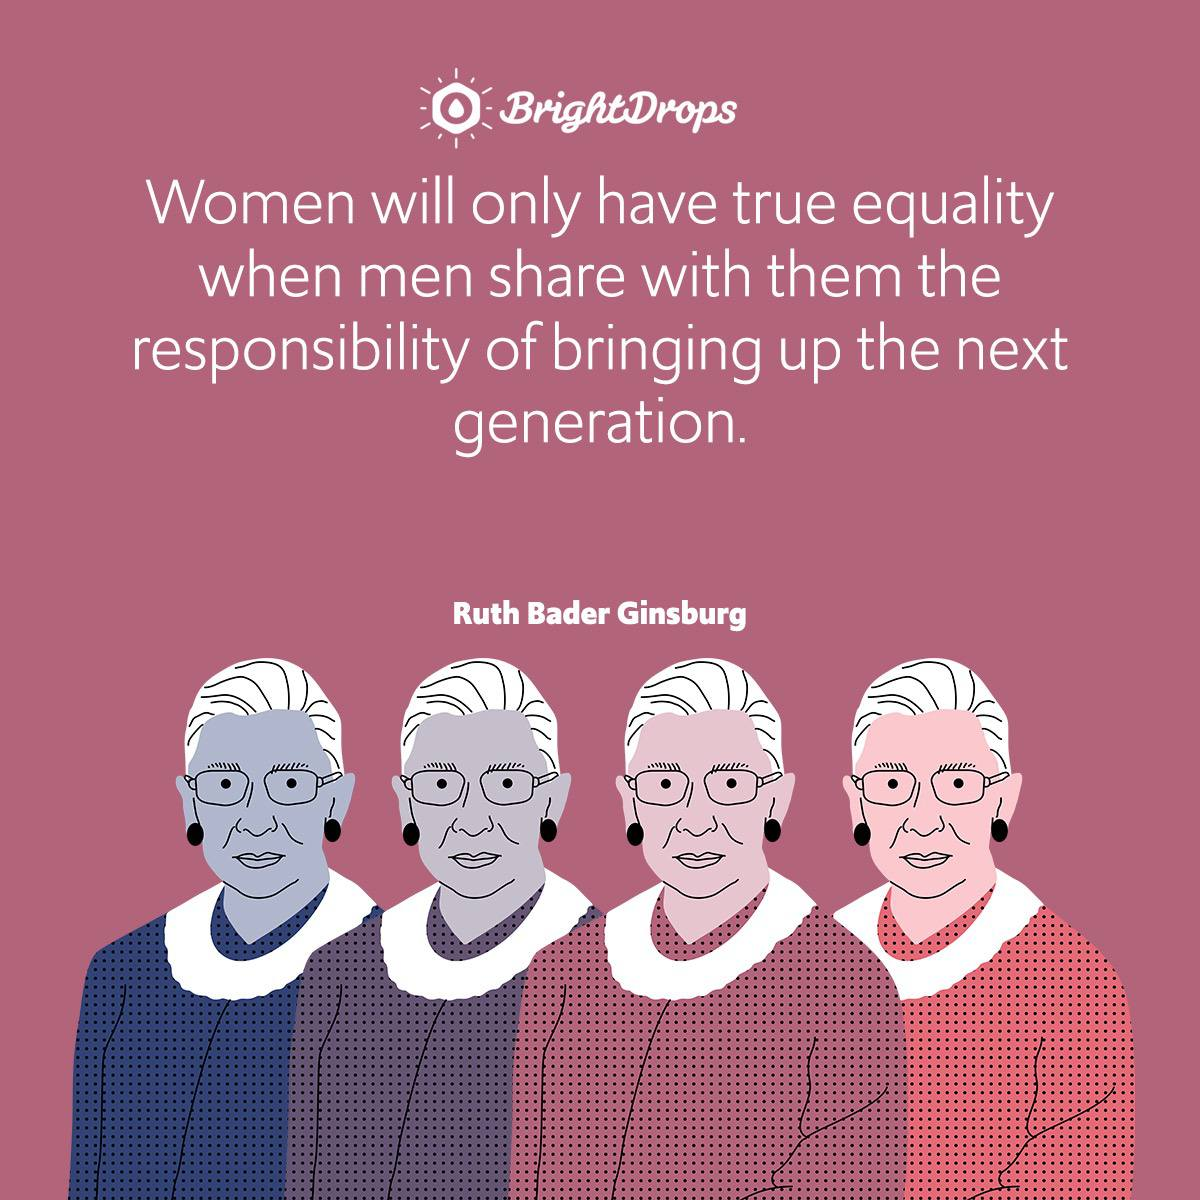 Women will only have true equality when men share with them the responsibility of bringing up the next generation.